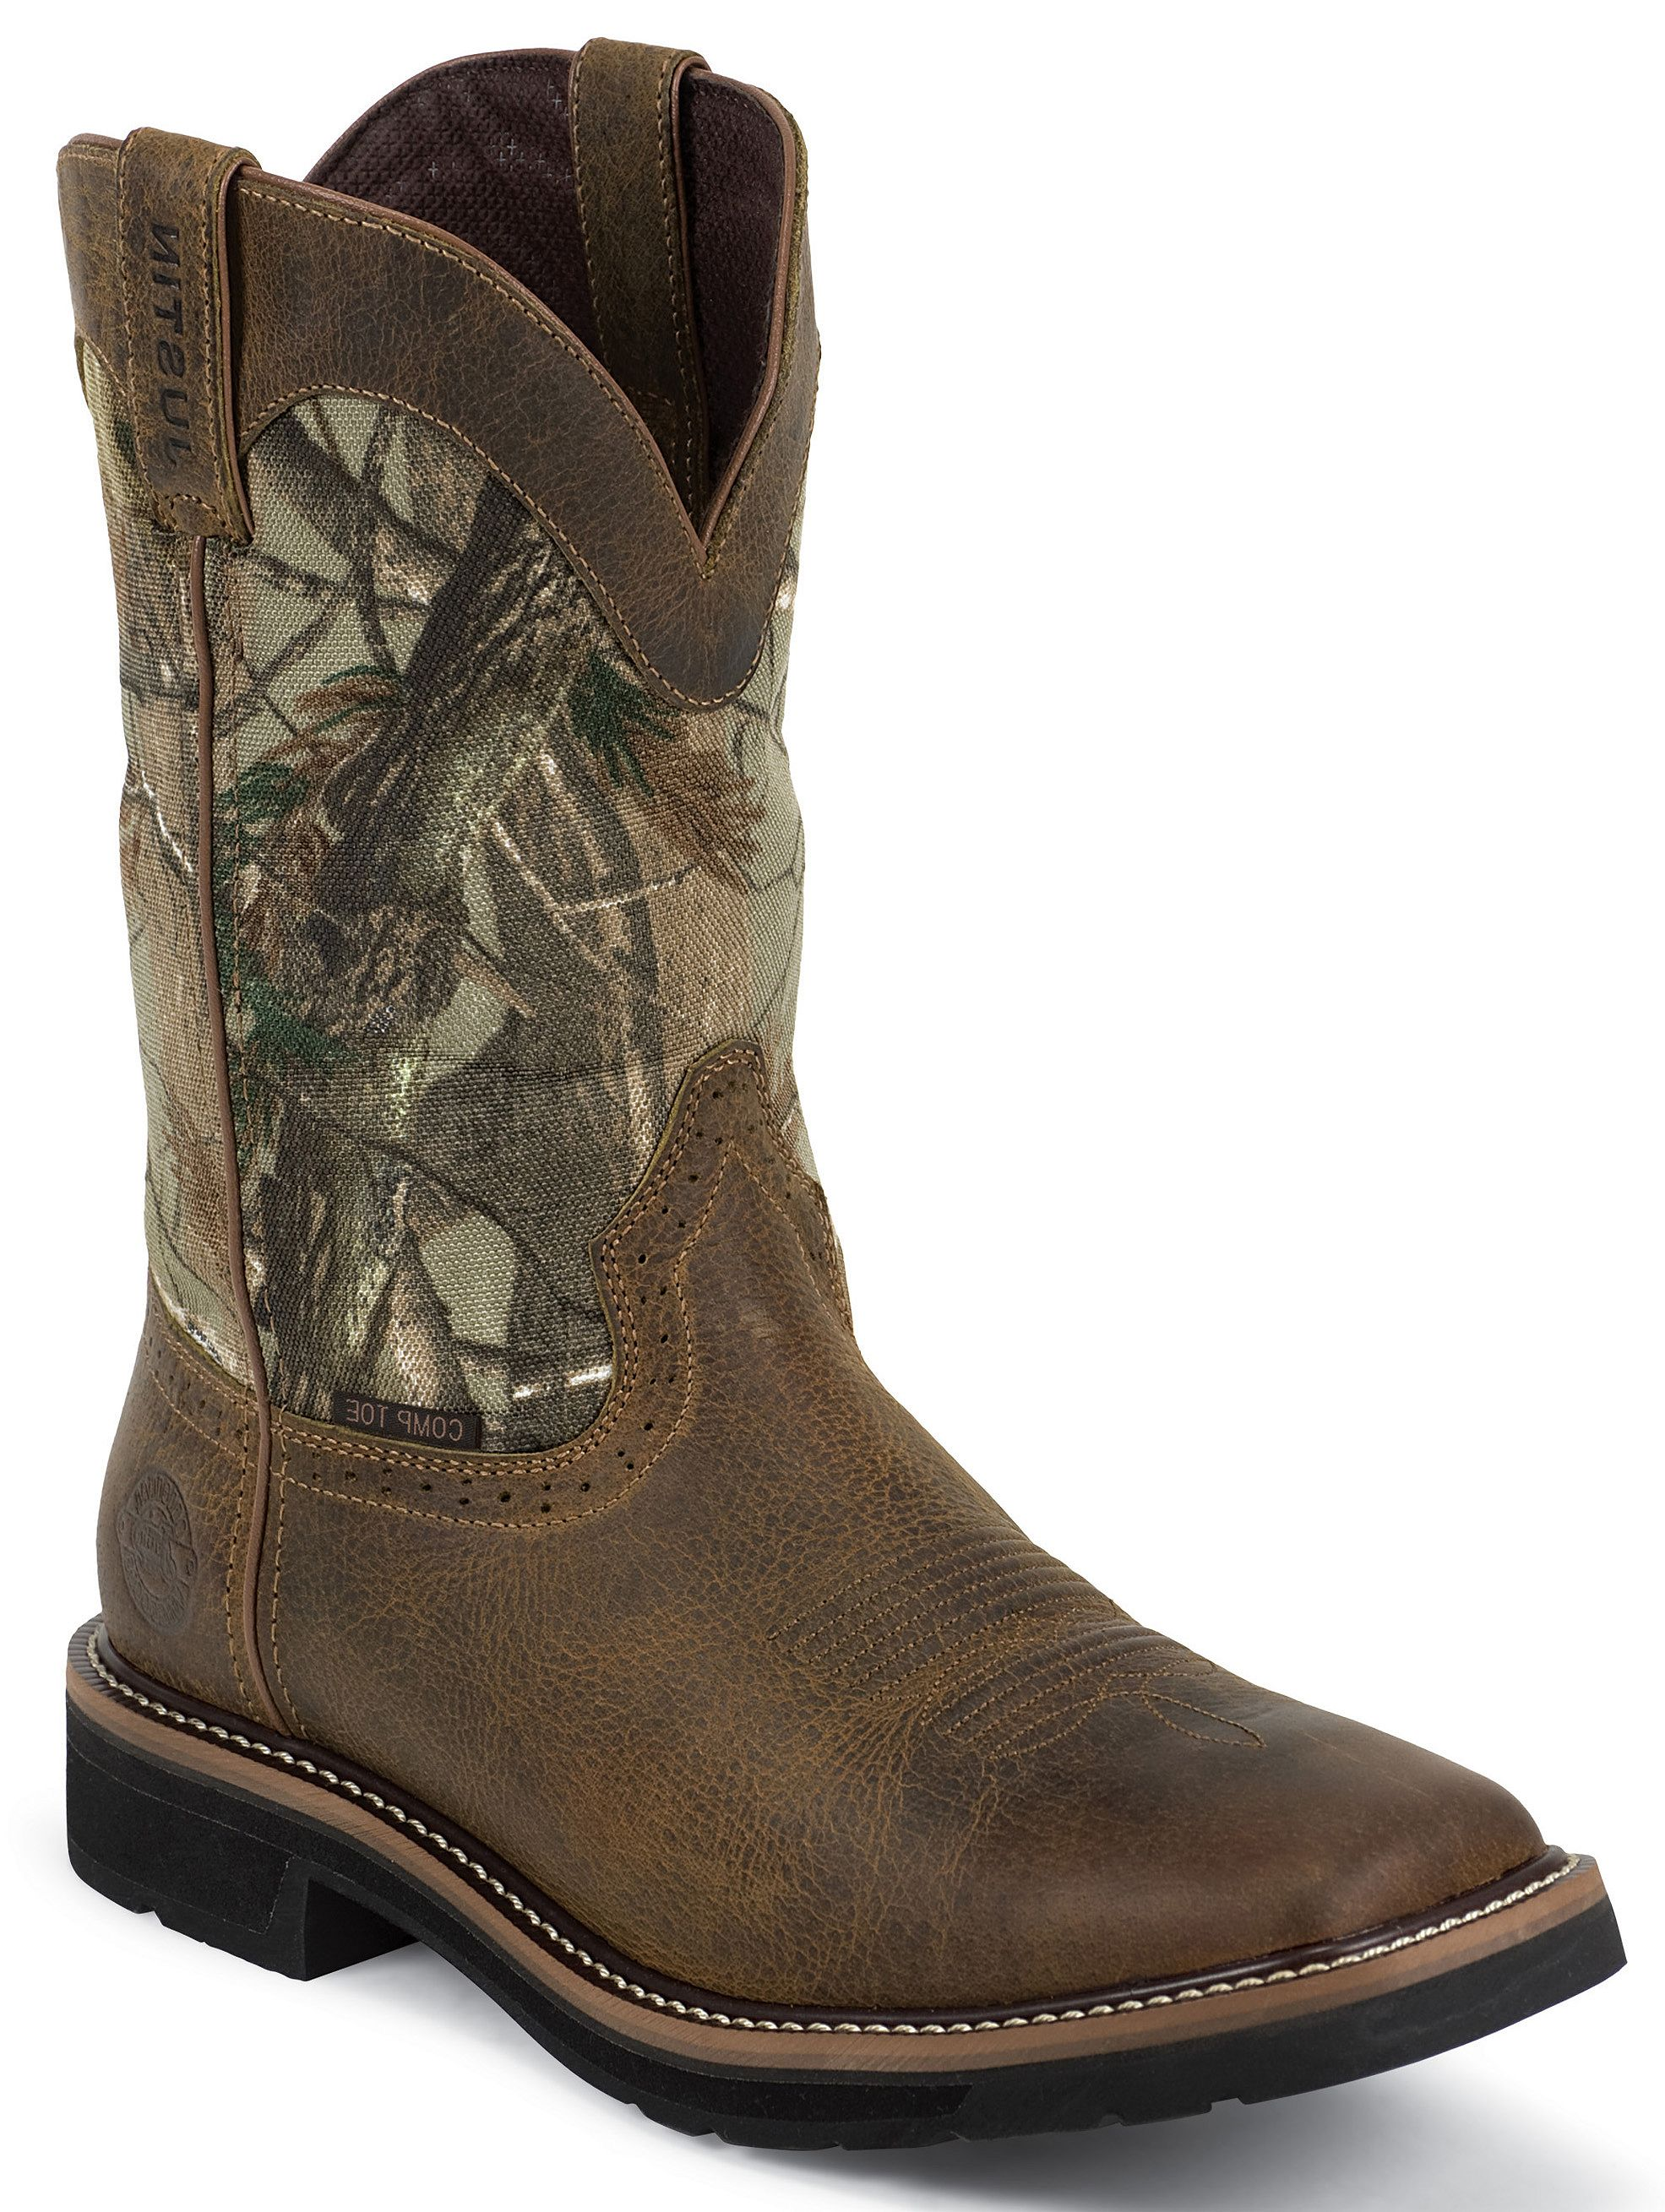 Justin Stampede Waterproof Camo Pull On Work Boots